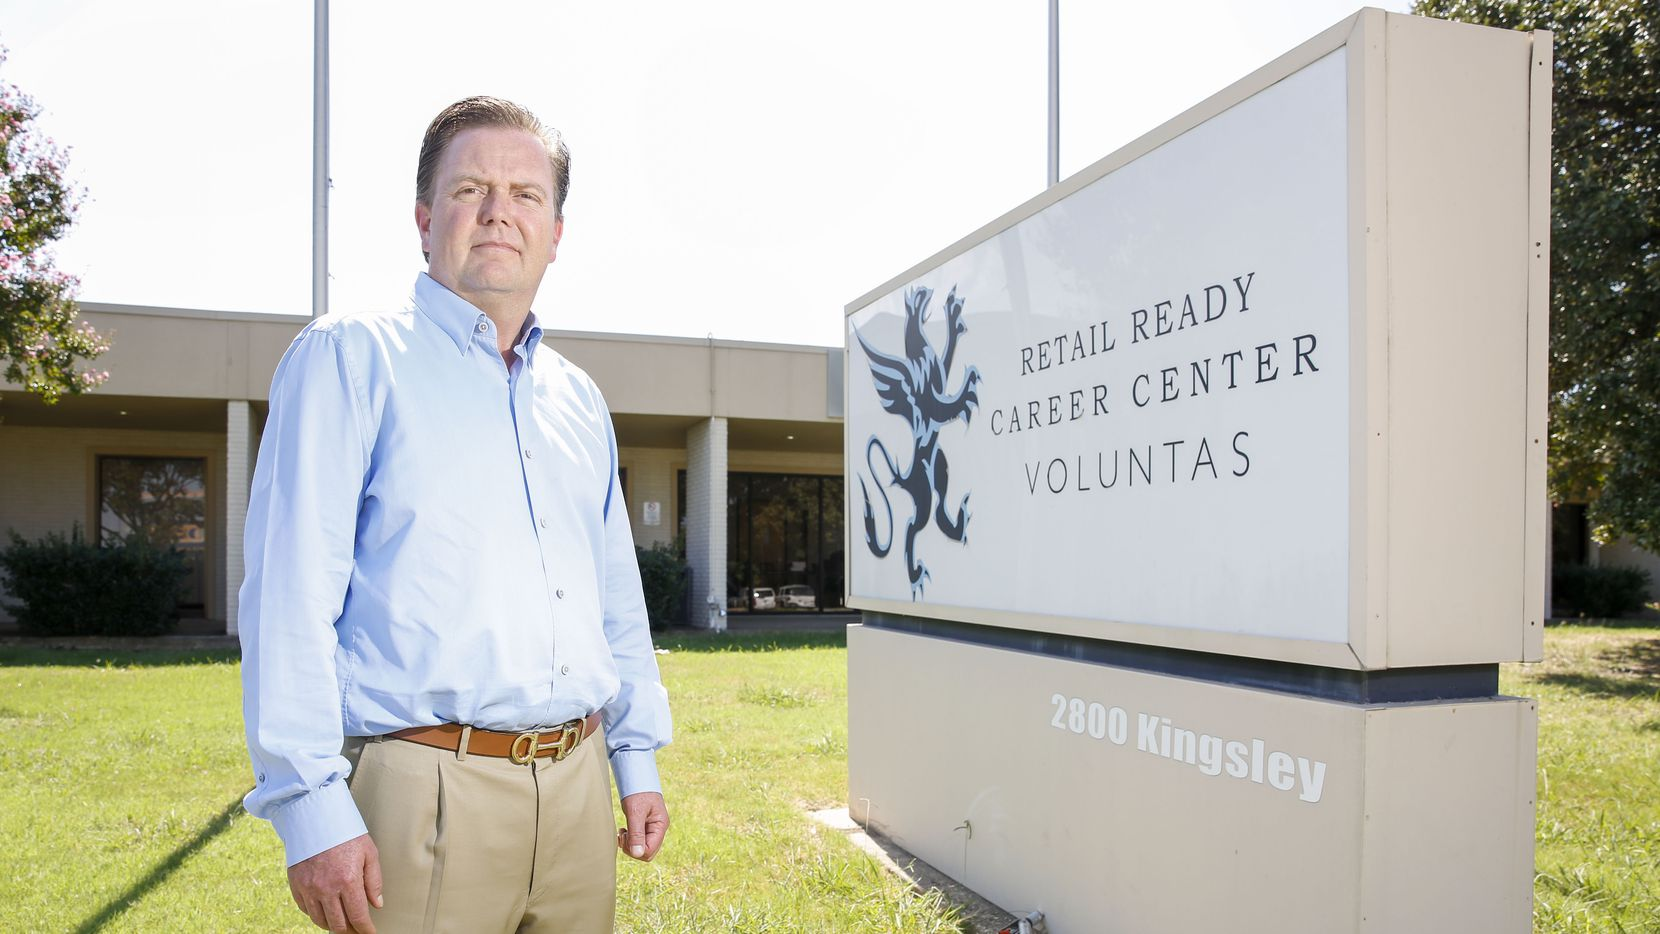 CEO and Founder Jon Davis of the Retail Ready Career Center stands outside the building that still houses his business in Garland, Texas Thursday September 26, 2019. He is accused of scamming the governments GI Bill out of millions, but has not been accused of a crime. Two years ago, the feds raided his business, froze his bank accounts and shut him down.